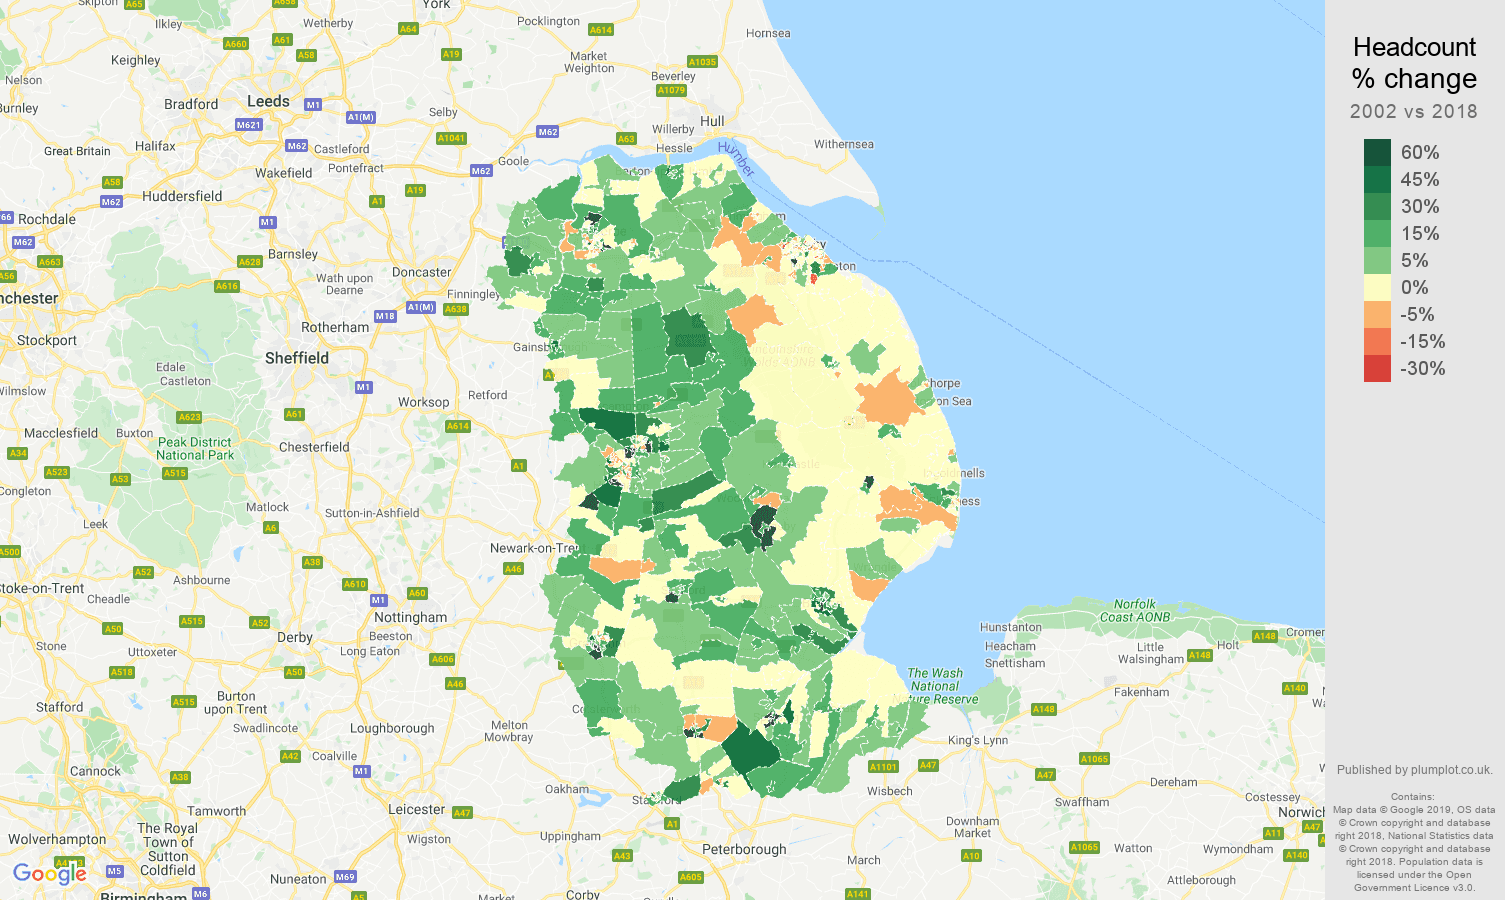 Lincolnshire headcount change map